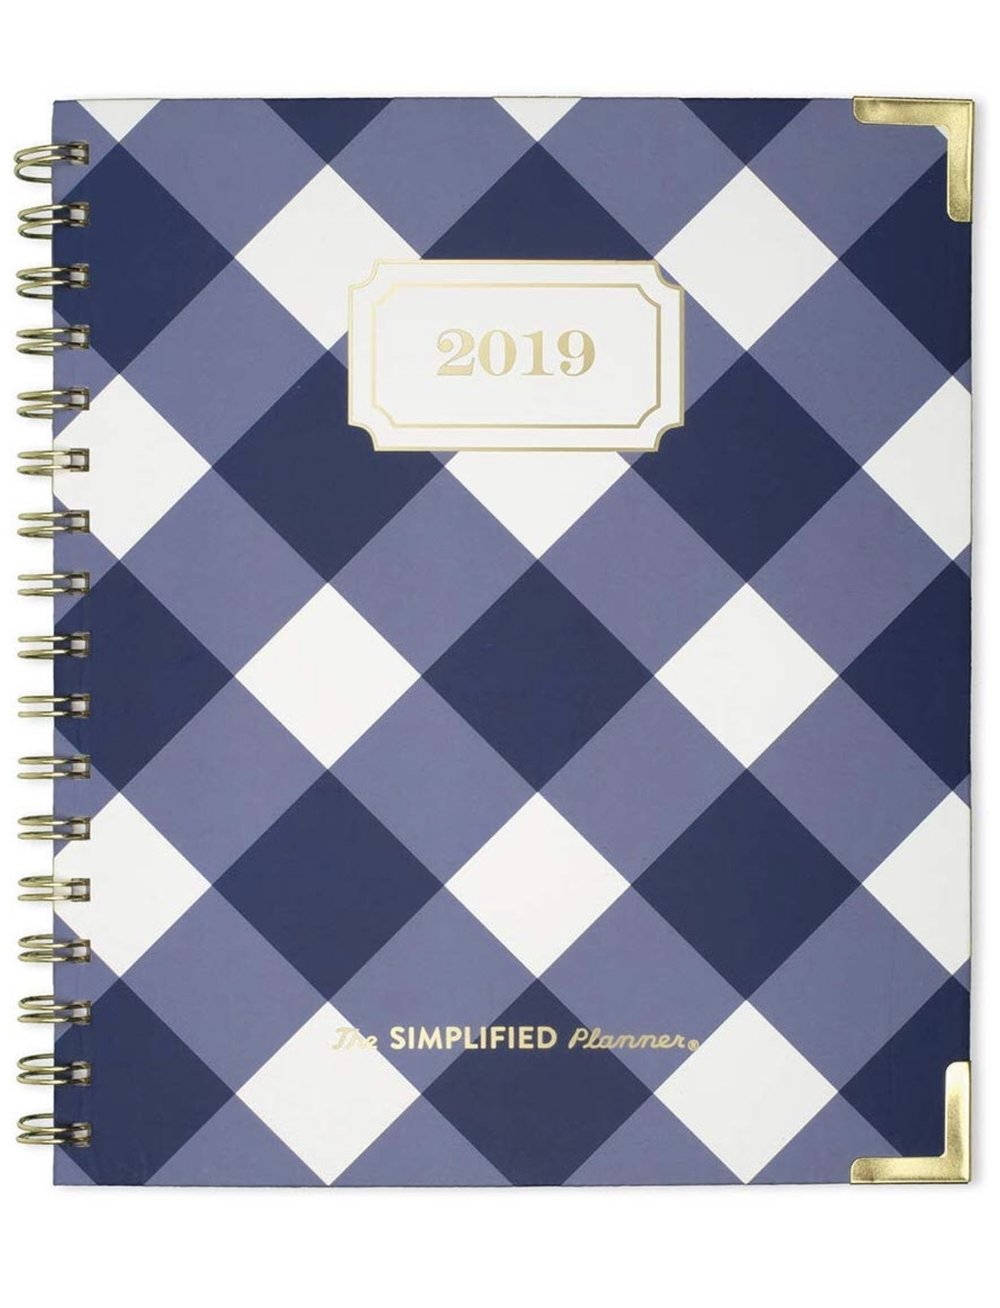 Emily Ley Simplified Planners